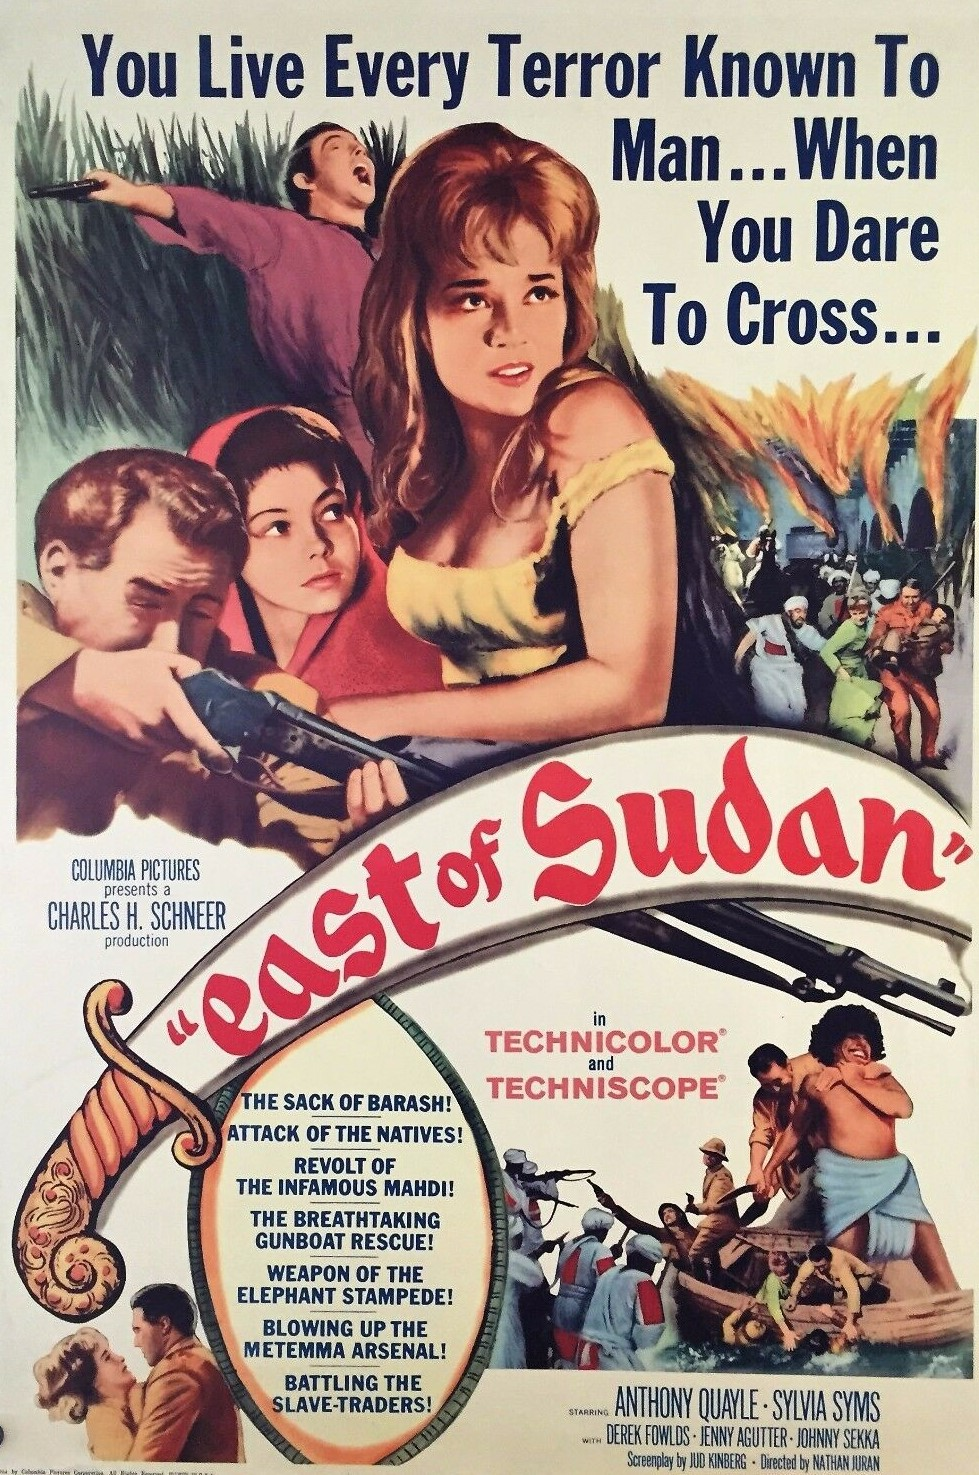 East of Sudan (1964) ***